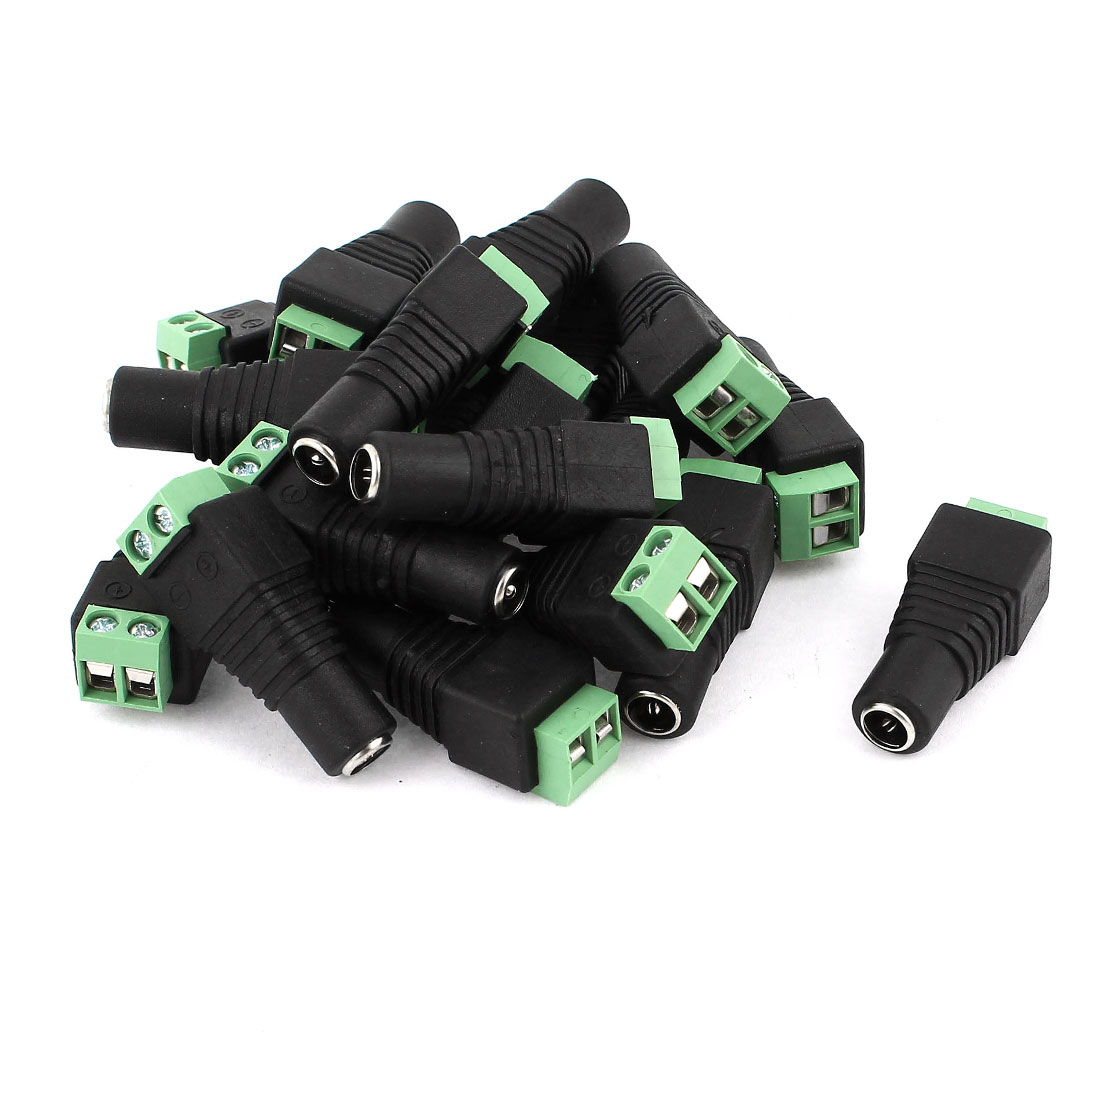 20 Pcs 5.5x2.1mm DC Power Female Screw Terminal Adapter Connector for CCTV Camera